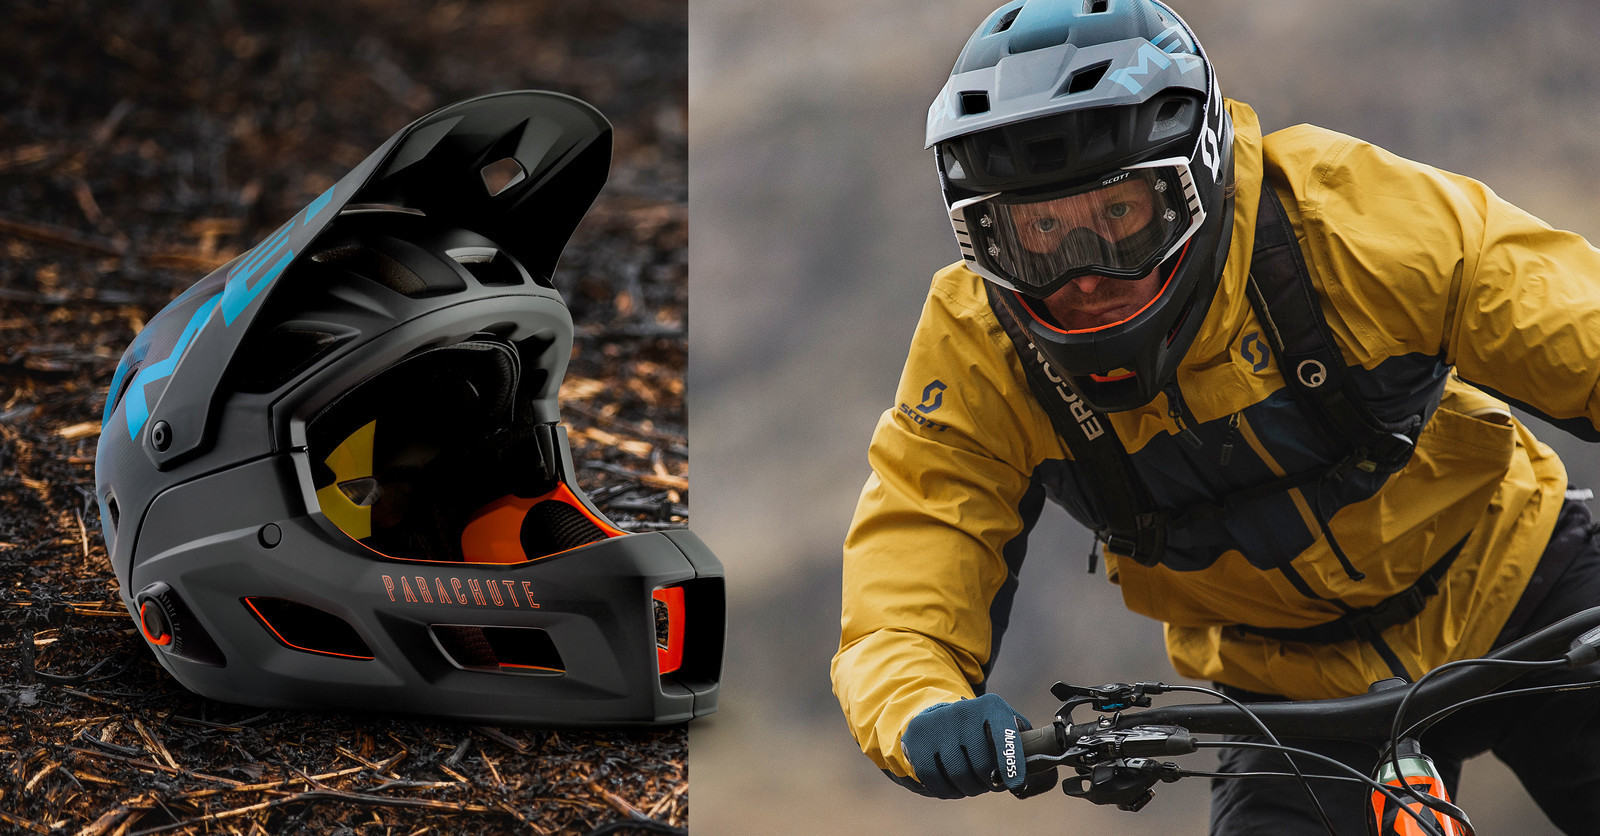 MET Launches the All-New Parachute MCR Convertible Full Face Helmet